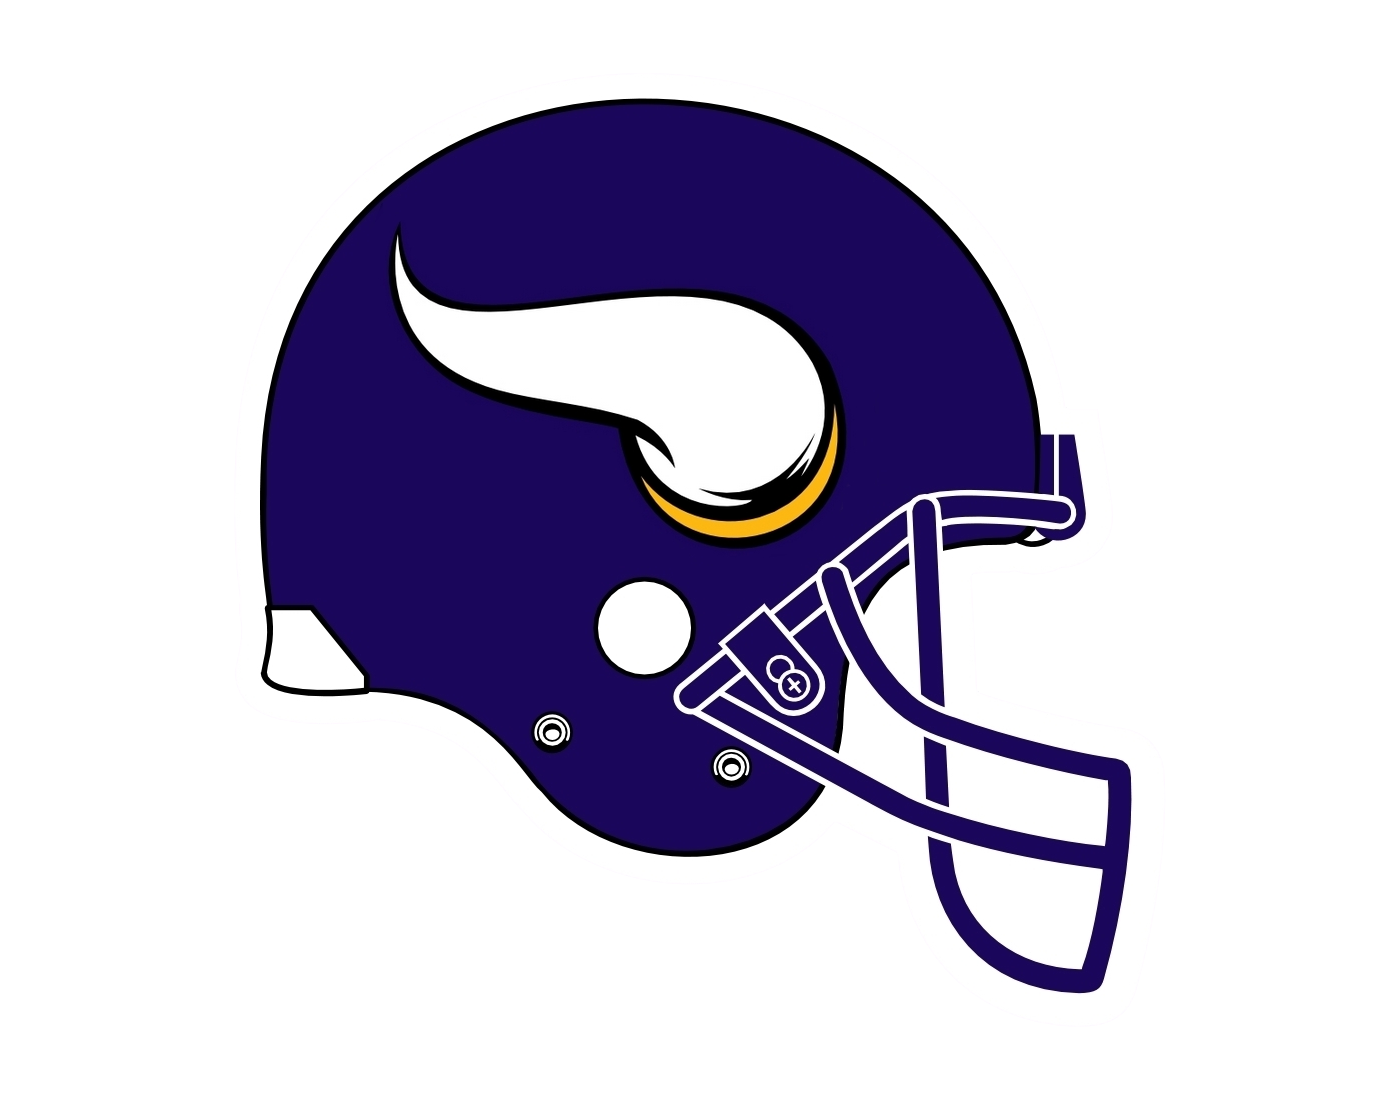 Vikings svg football. Helmet png royalty